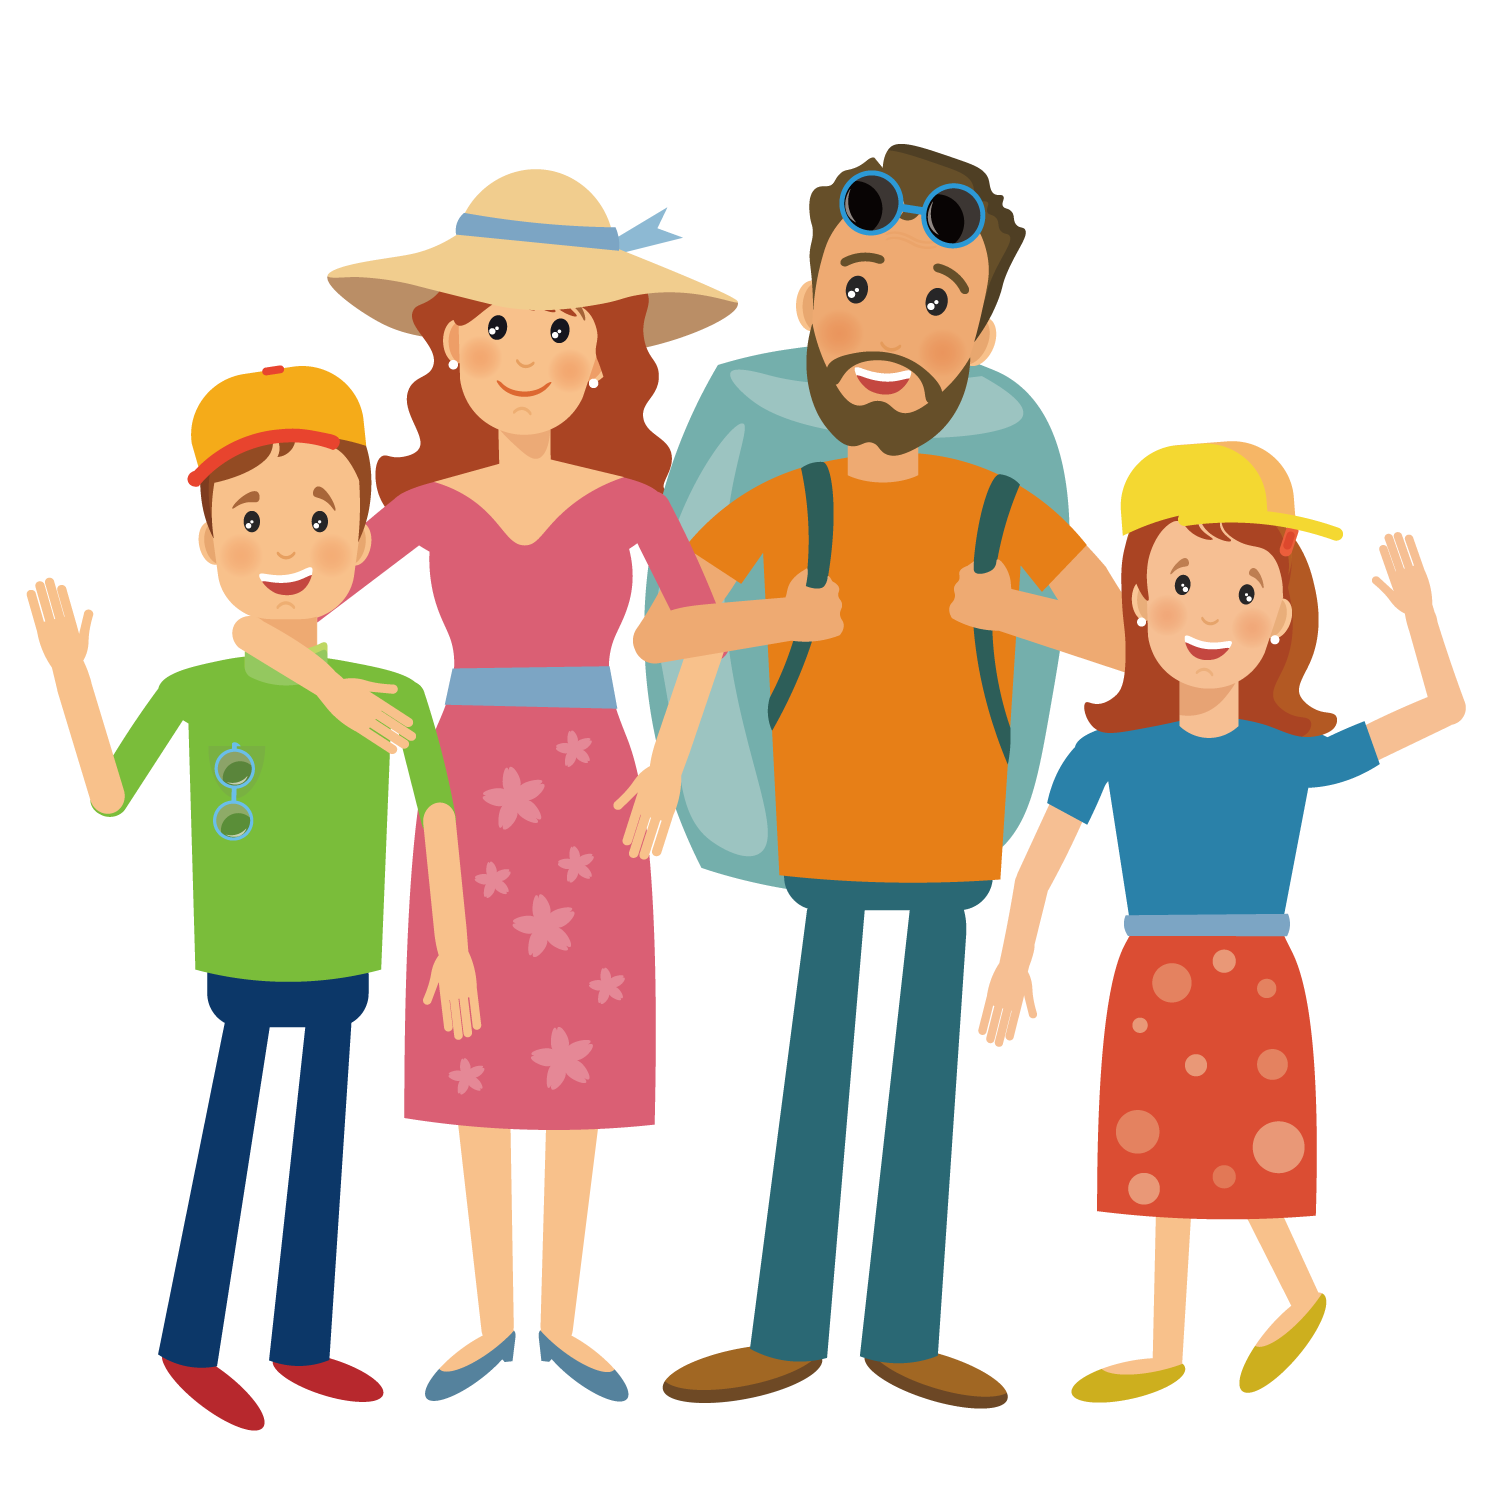 Camping hiking illustration travel. Hike clipart family hike